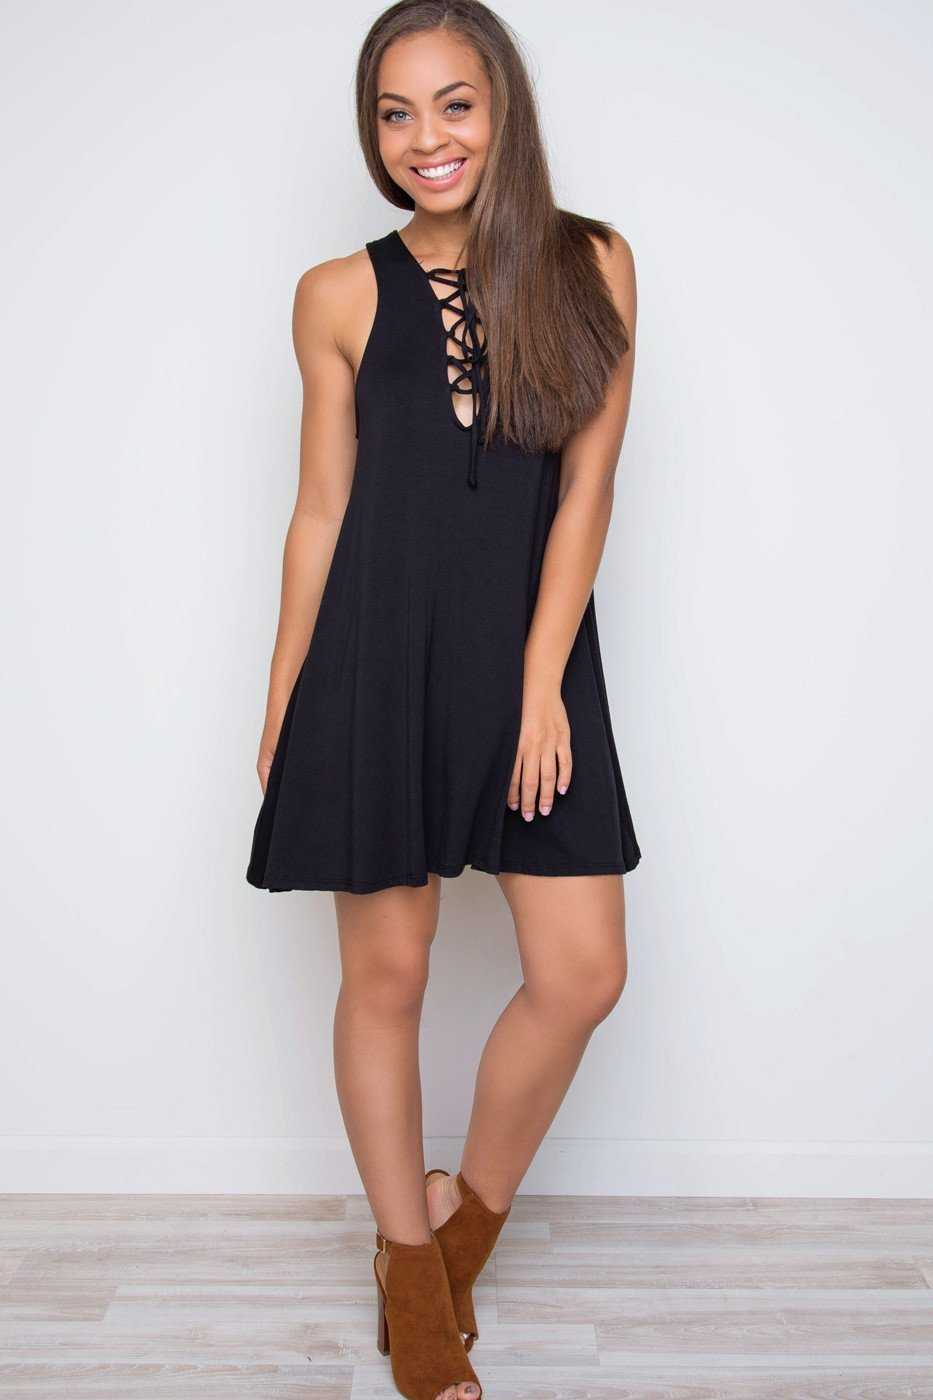 Dresses - Harlee Lace Up Dress - Black